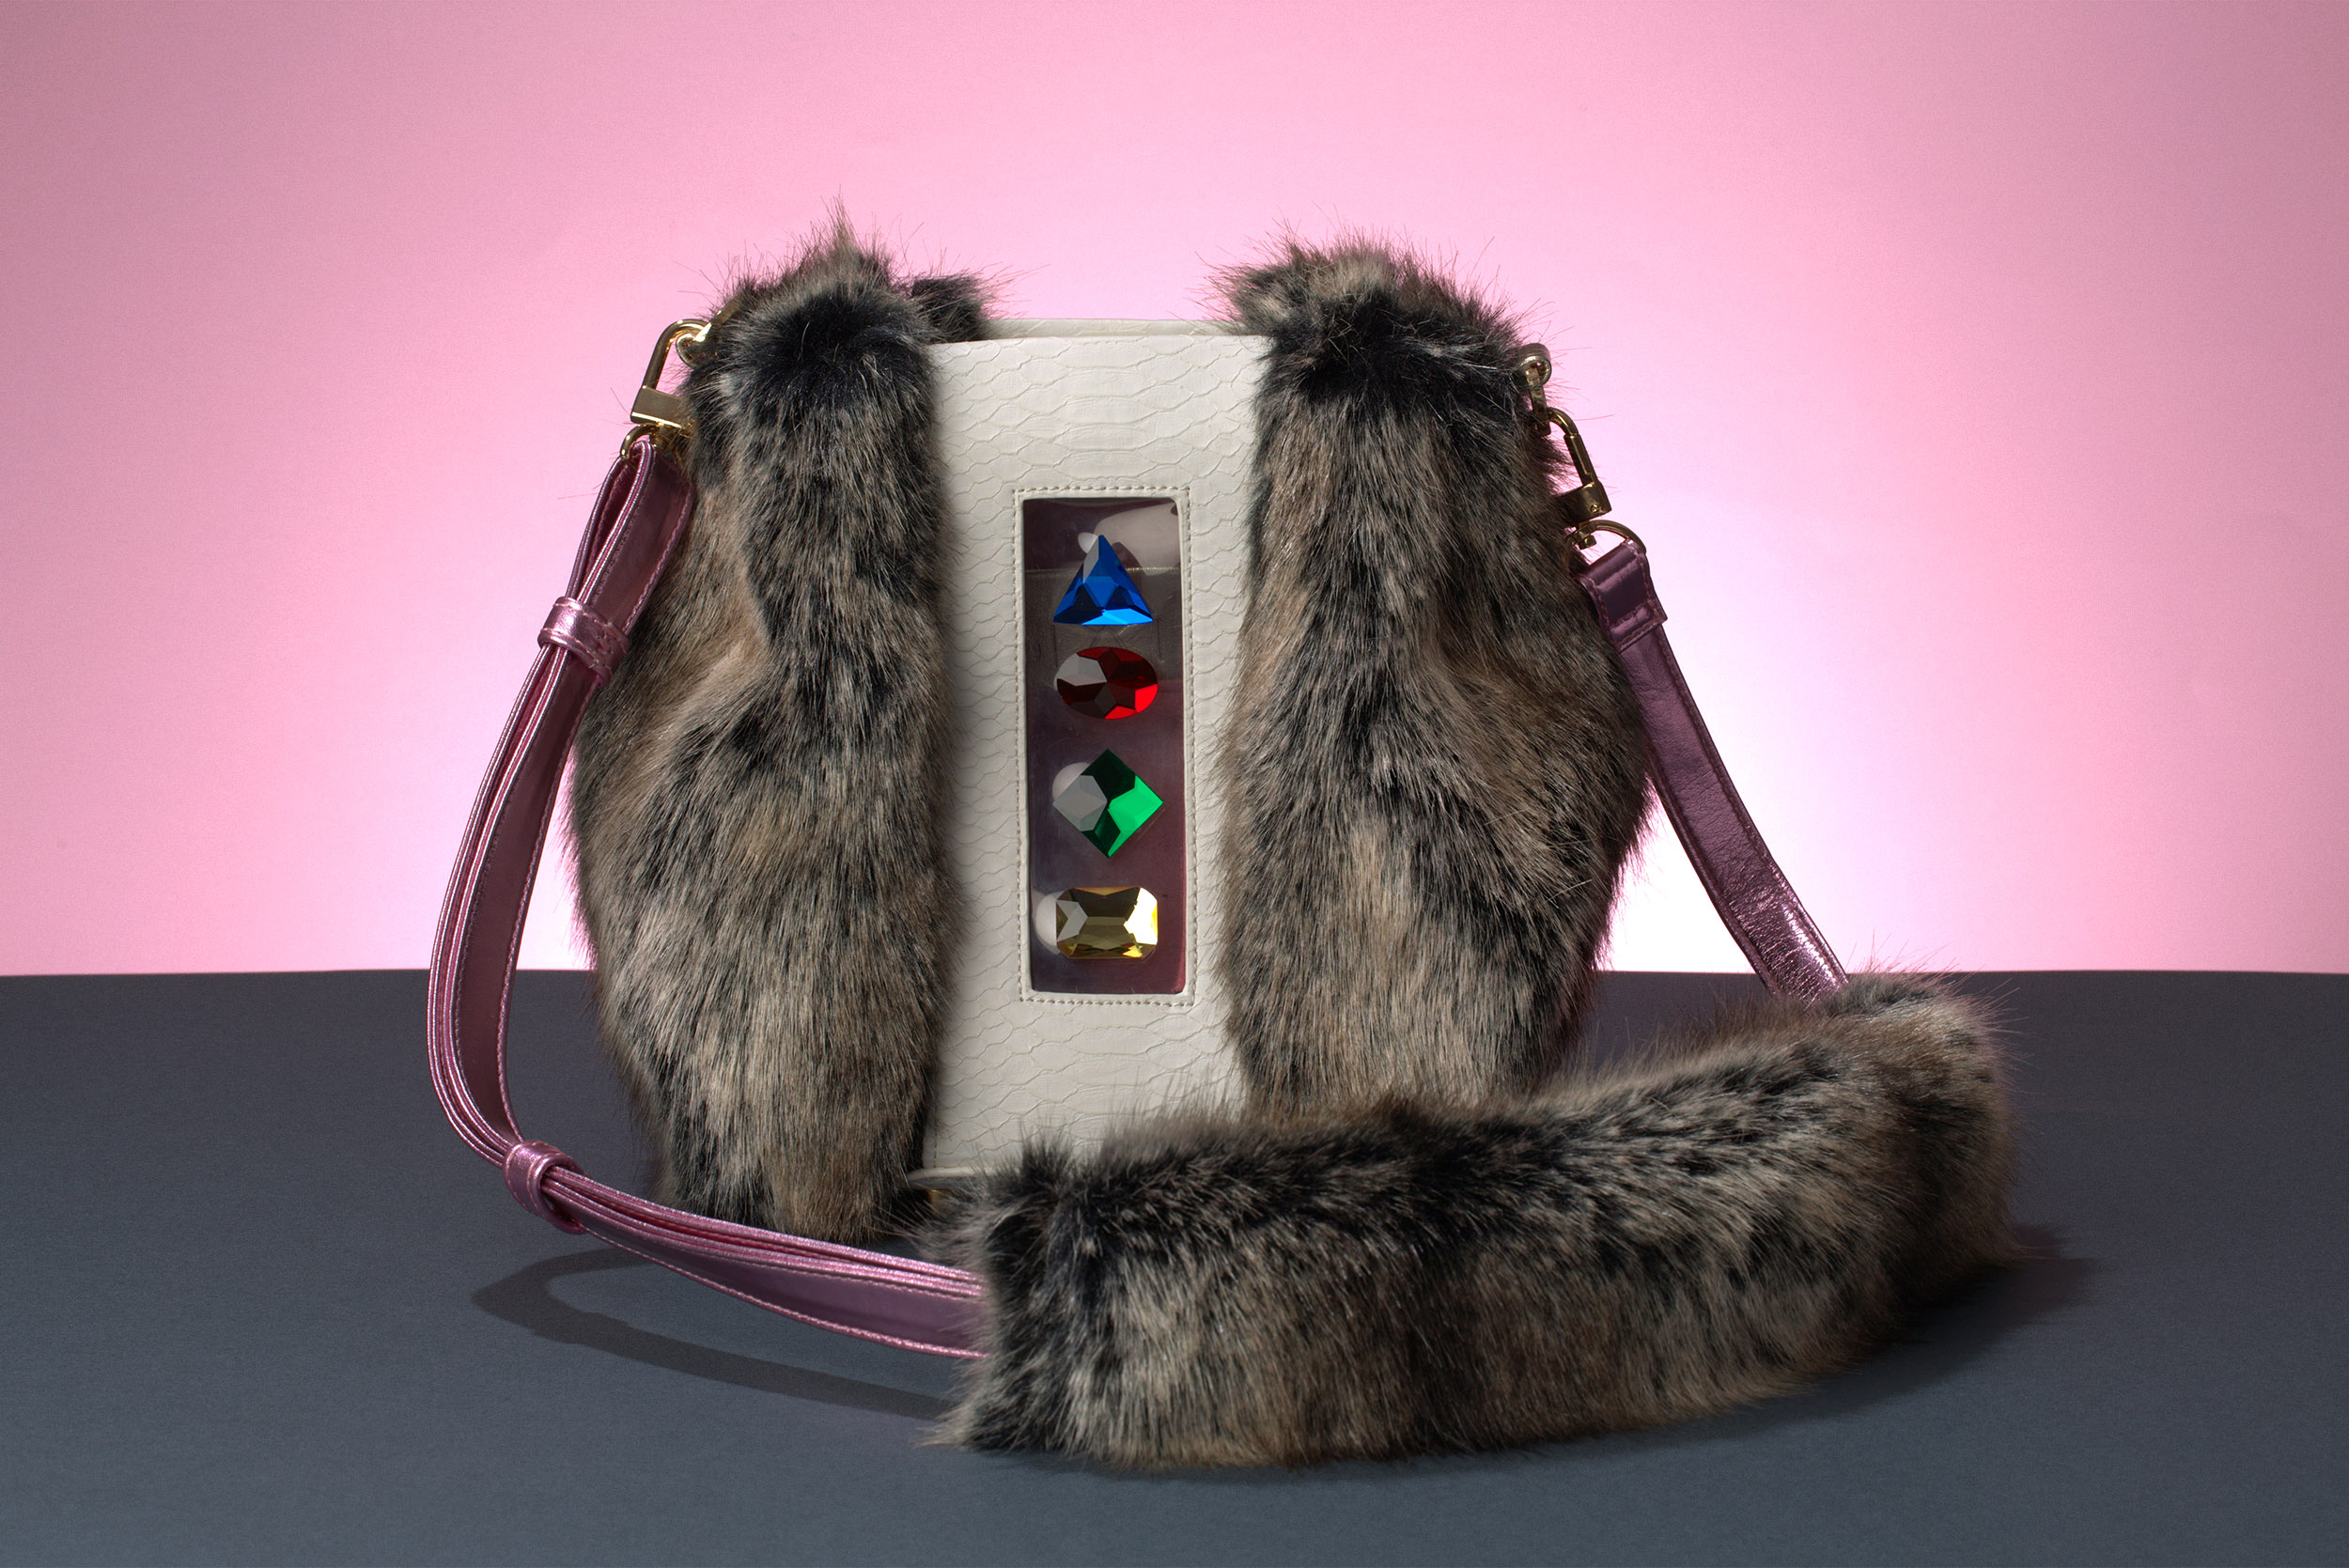 FruitenVeg-NAMI bag-never-leather-artificial-fur-luxury-cross-body-small-handbag-nyc